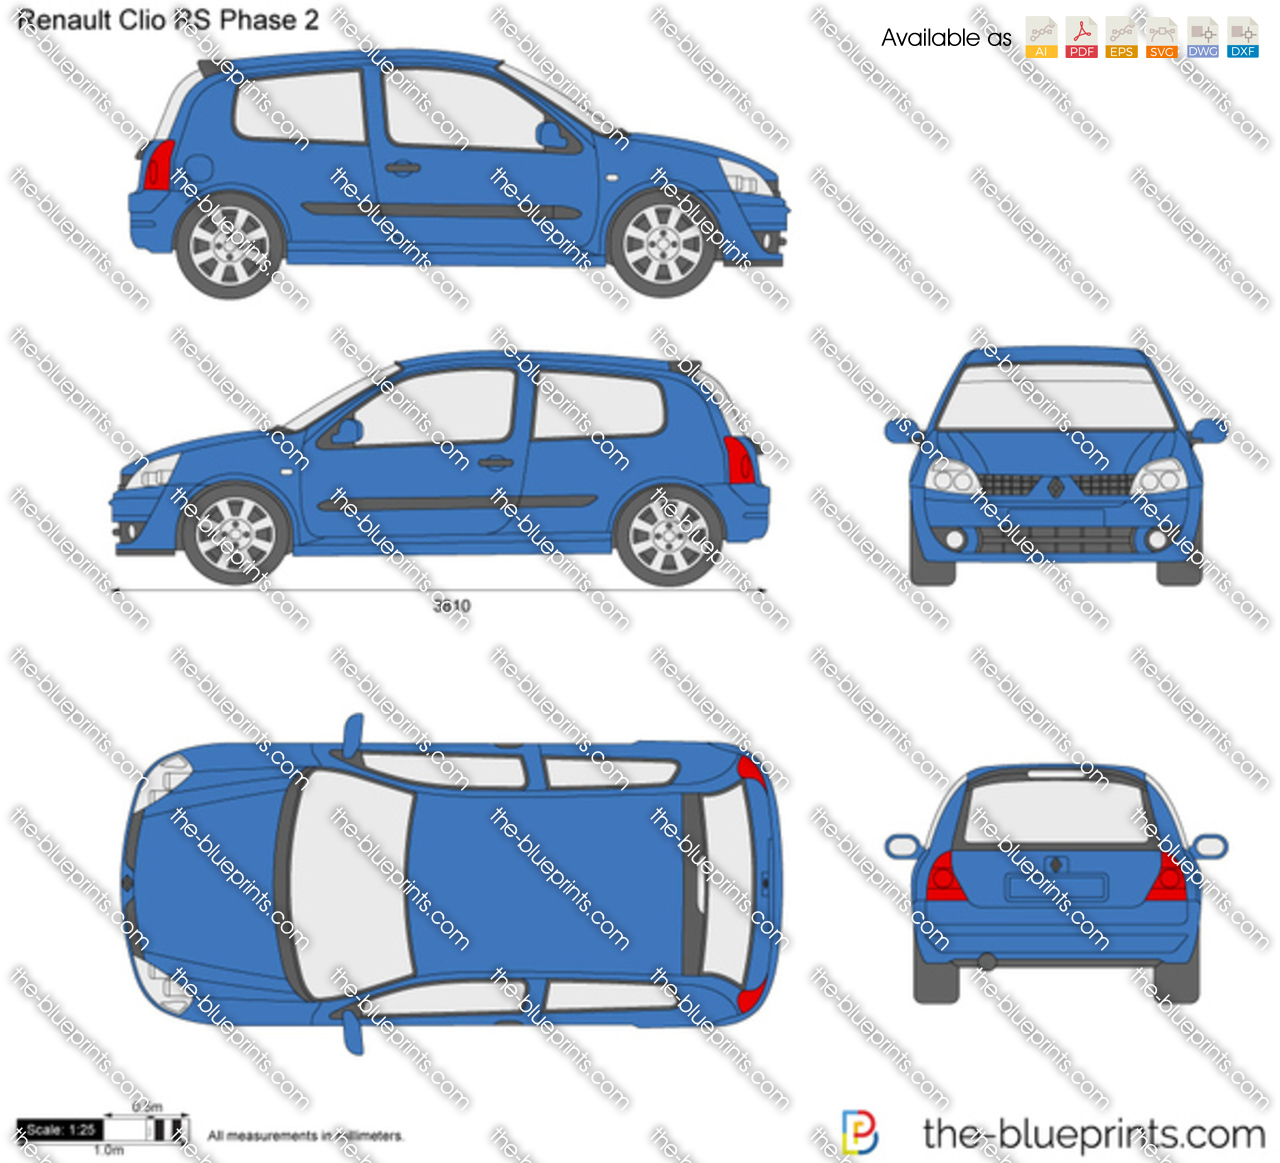 Renault Clio RS Phase 2 2003